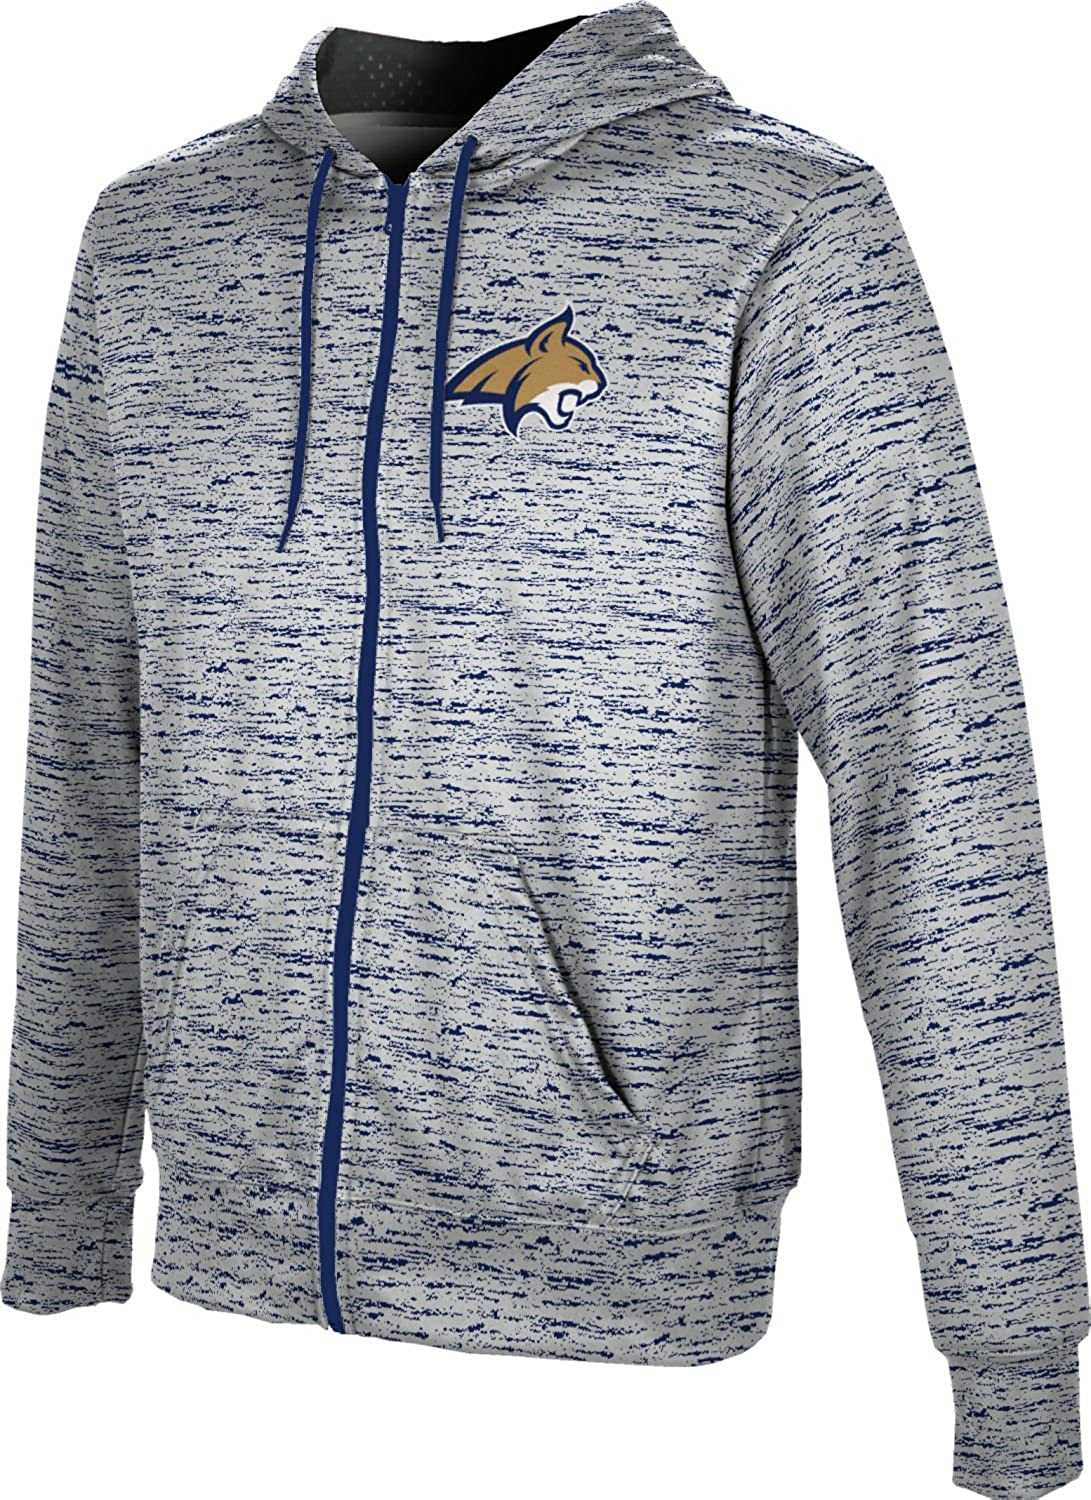 Montana State University Boys' 4 years warranty Zipper Spirit Swea Special price for a limited time School Hoodie